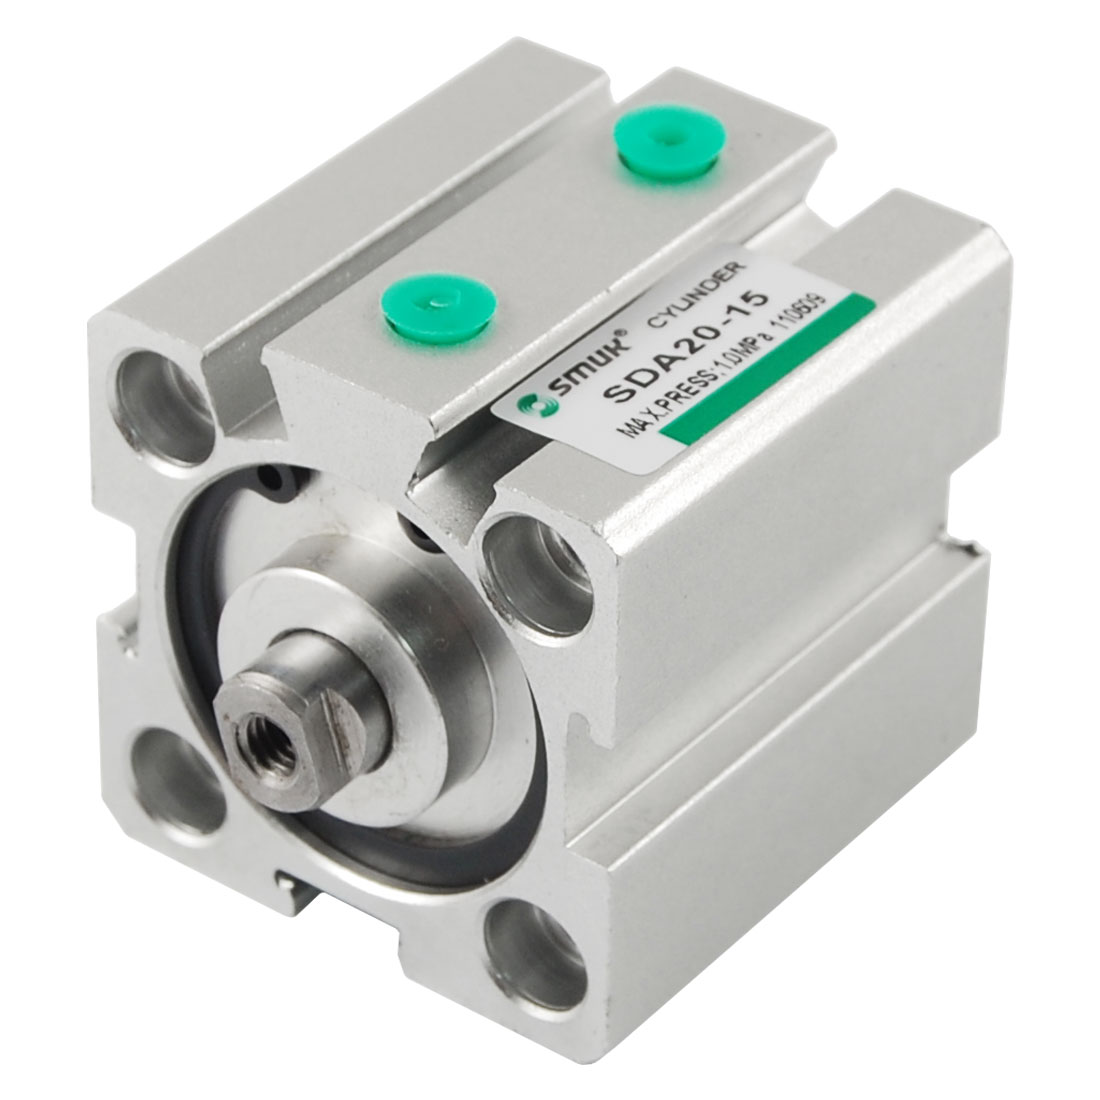 20mm Bore 15mm Stroke Compact Pneumatic Air Cylinder SDA